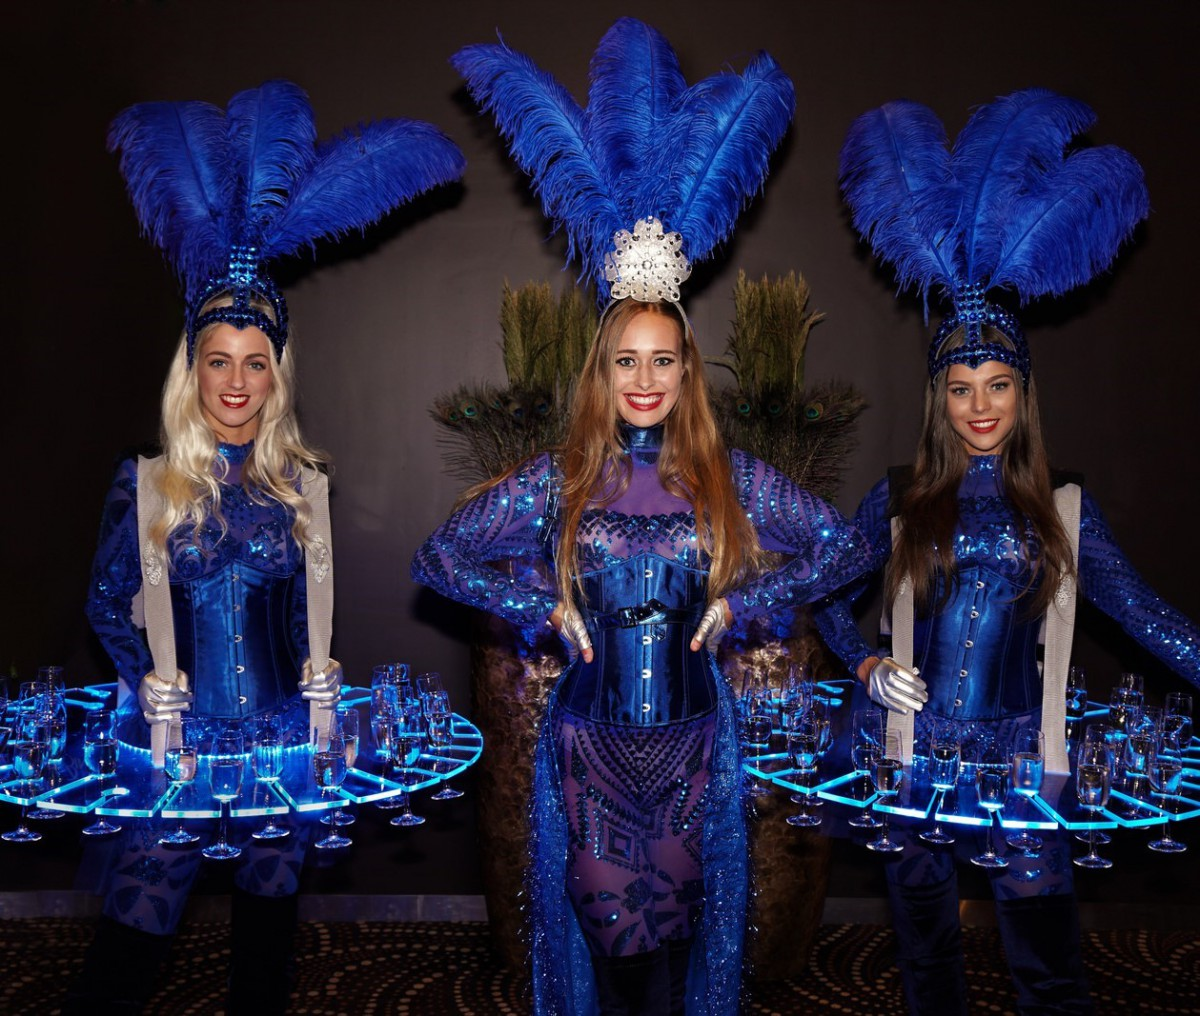 Ontvangstdames, Welkomstact, Champagne Dames, LED Champagnedames, Bubbel Girls, Luxe catering act, Food entertainment, Food and Beverage, Chapagne tafel, Champagne jurk, entree hostess, champagnedames, levende LED-tafels, Champagnebar, LED-Champagnetafel,